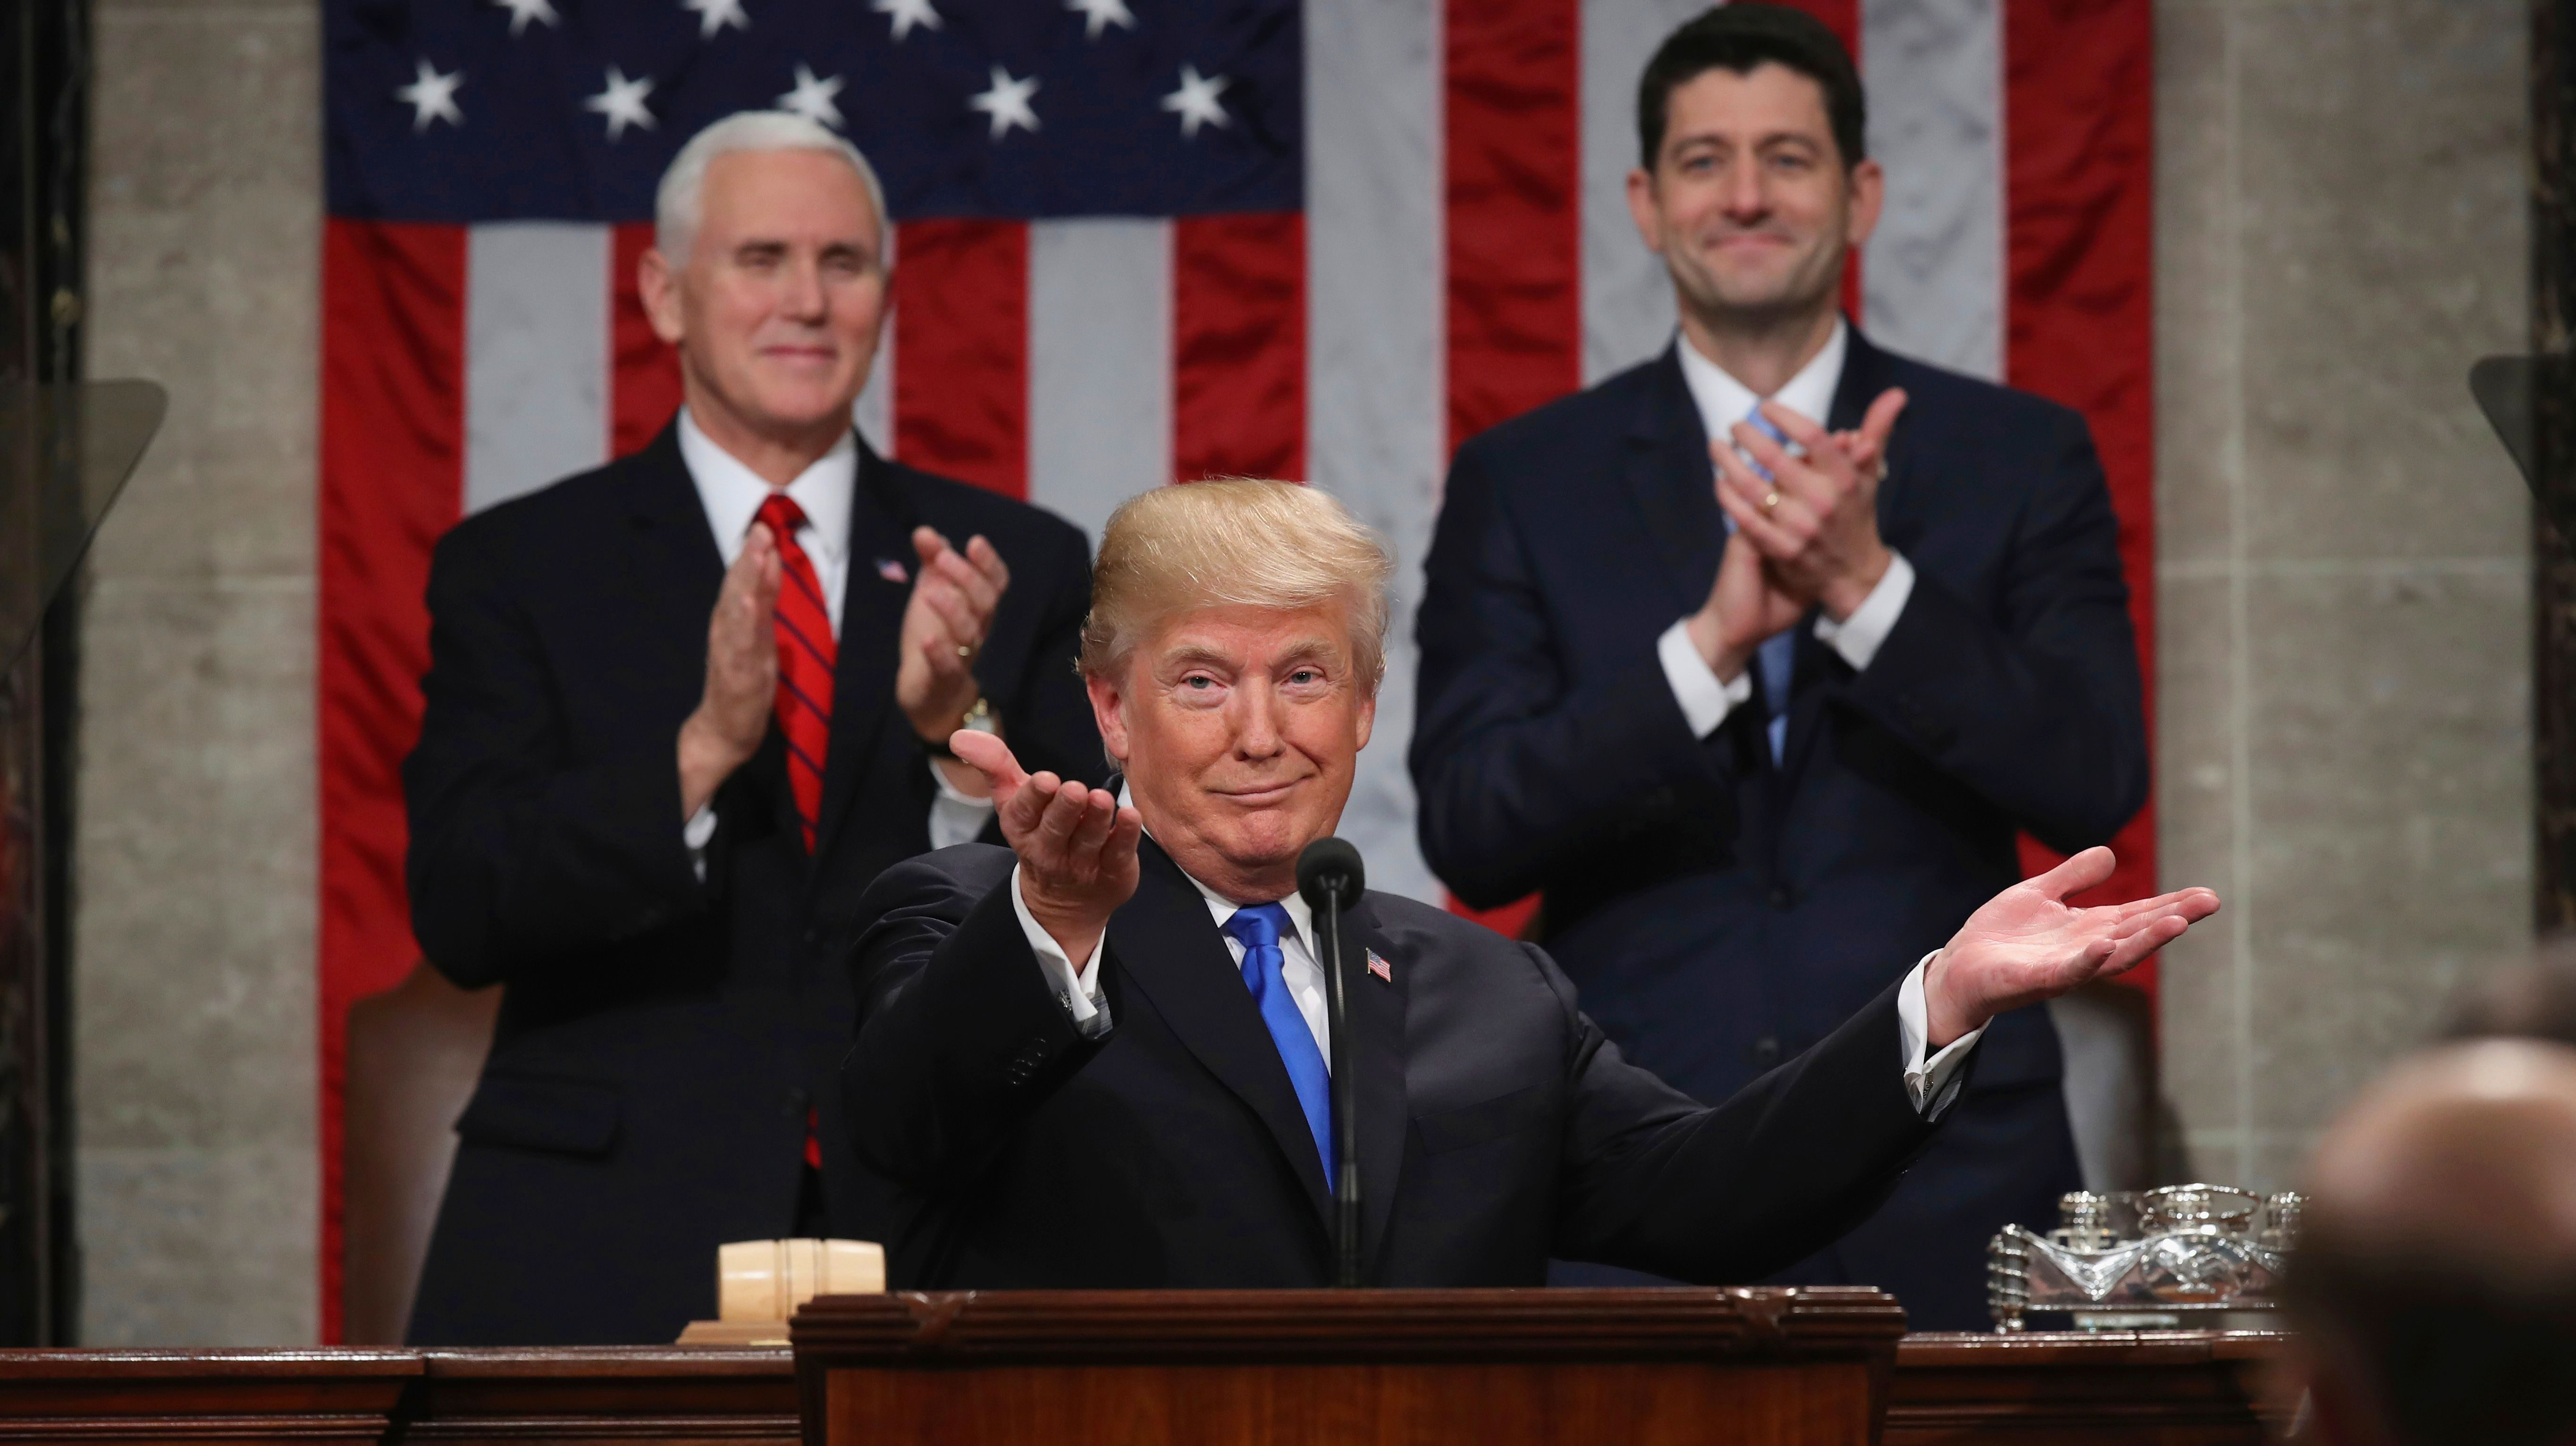 President Donald Trump gestures as delivers his first State of the Union address in the House chamber of the U.S. Capitol to a joint session of Congress Tuesday, Jan. 30, 2018 in Washington, as Vice President Mike Pence and House Speaker Paul Ryan applaud.